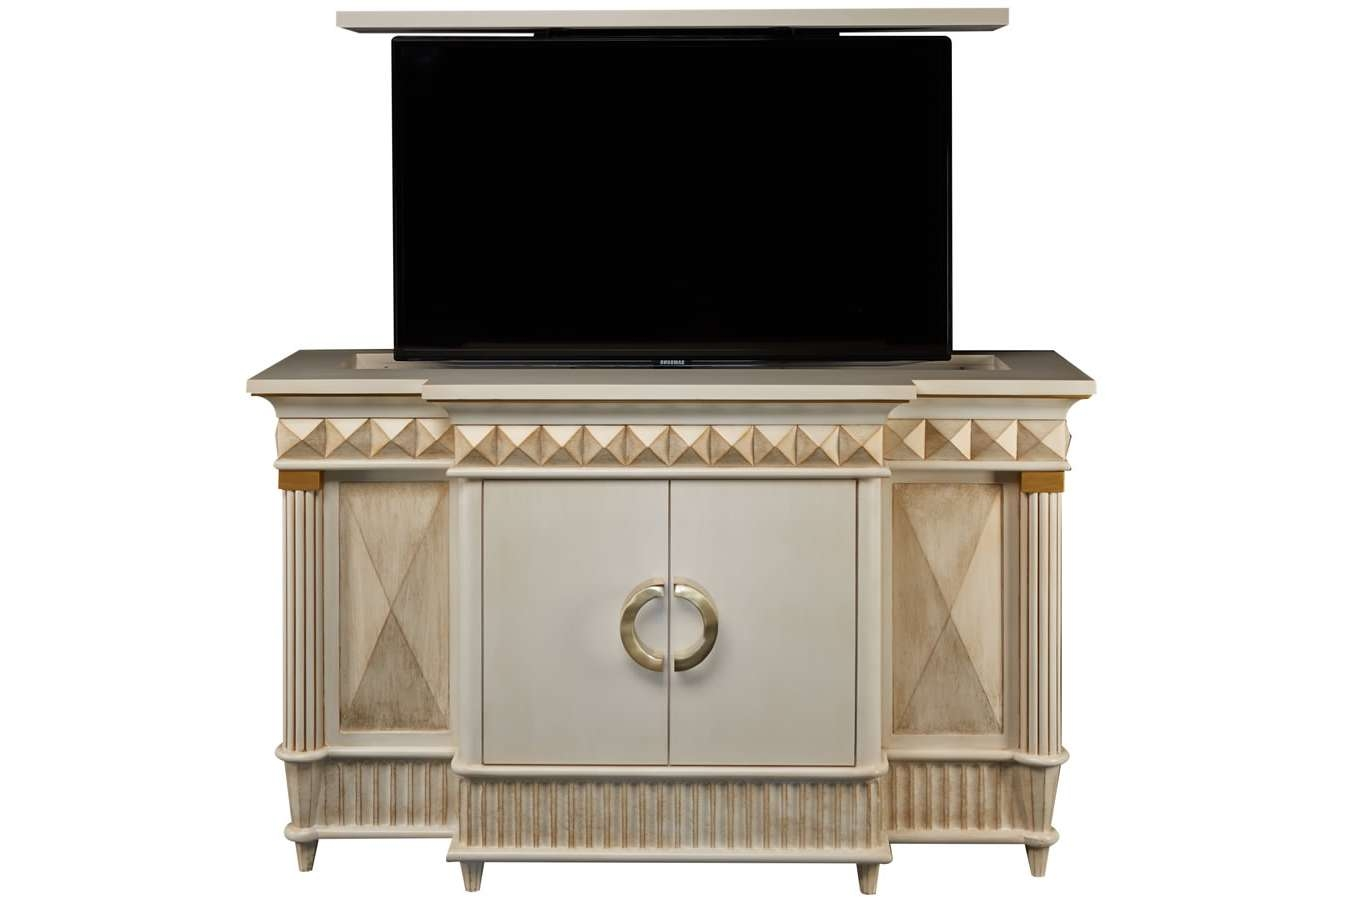 Furniture: Antique Flat Screen Tv Cabinet With Gold Curving Accent Within Gold Tv Stands (View 8 of 20)